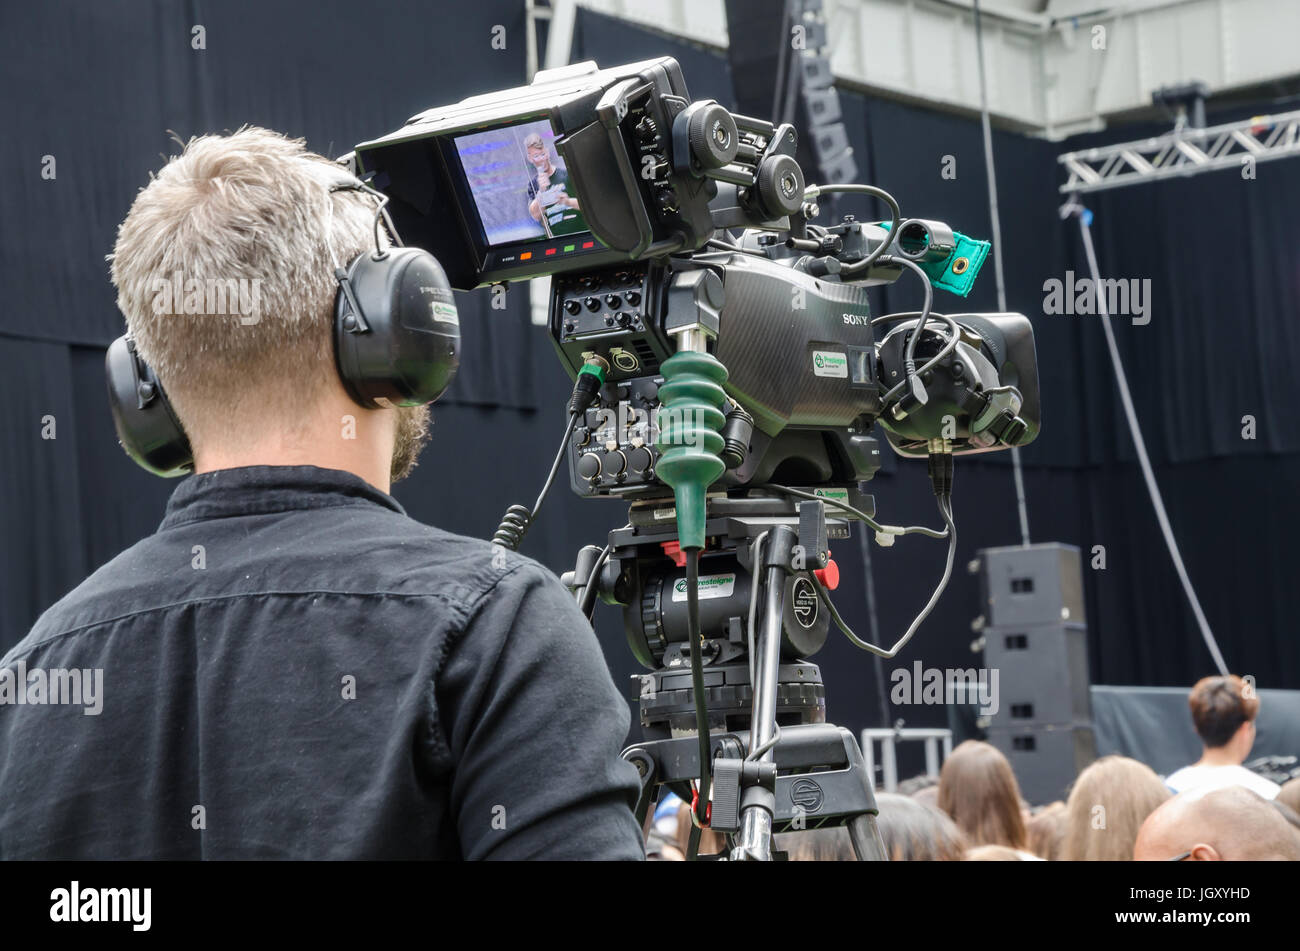 A cameraman from behind. - Stock Image